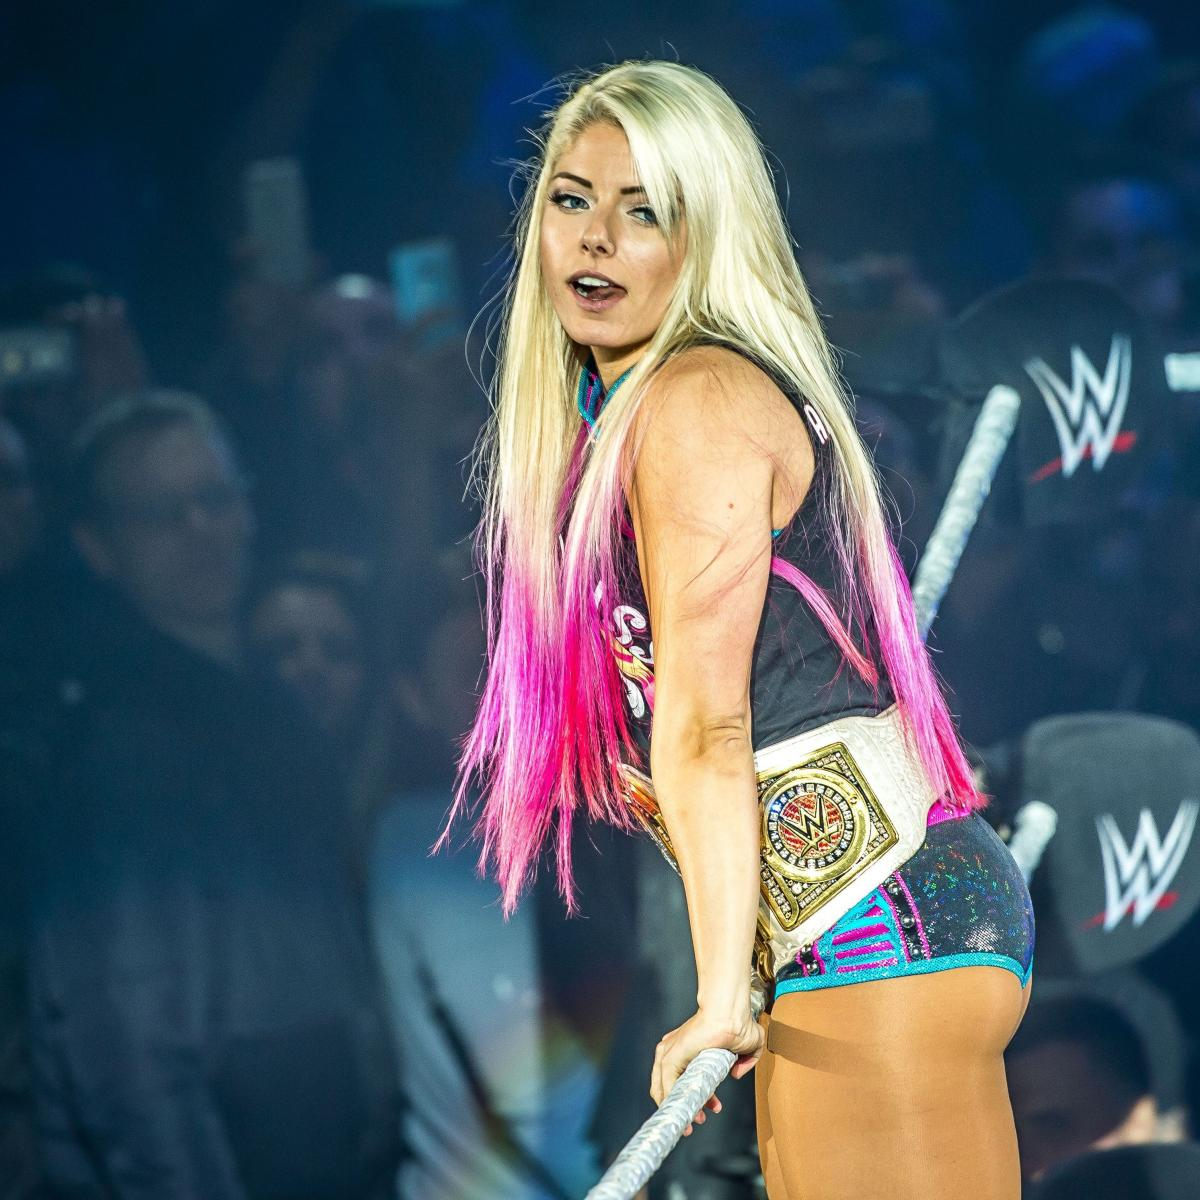 Alexa Bliss Suffers Shoulder Injury at WWE Backlash, to Undergo Further Testing